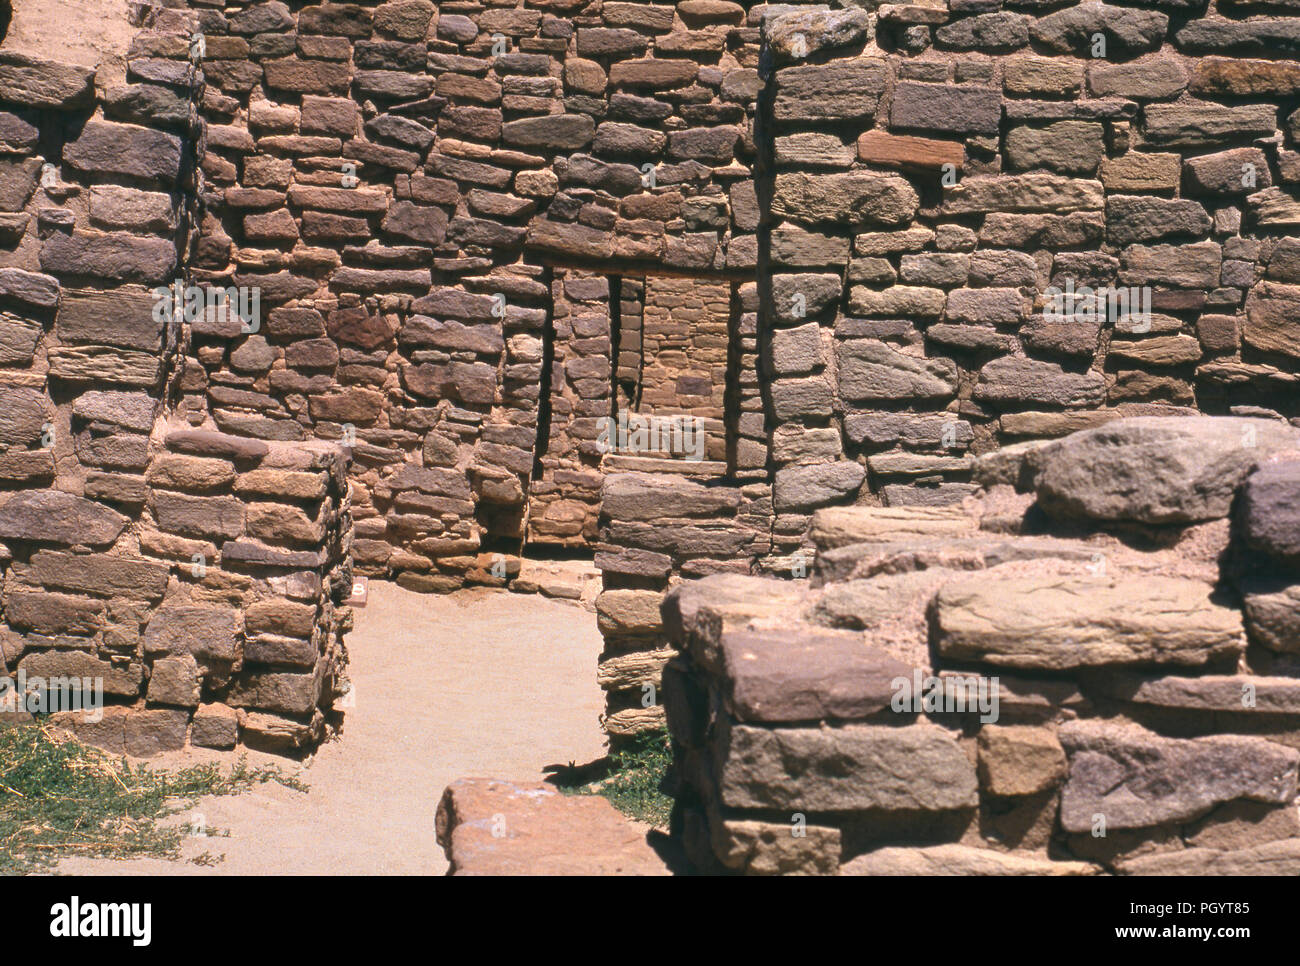 Ancestral Puebloan/Anasazi ruins, Aztec National Monument, New Mexico. Photograph - Stock Image